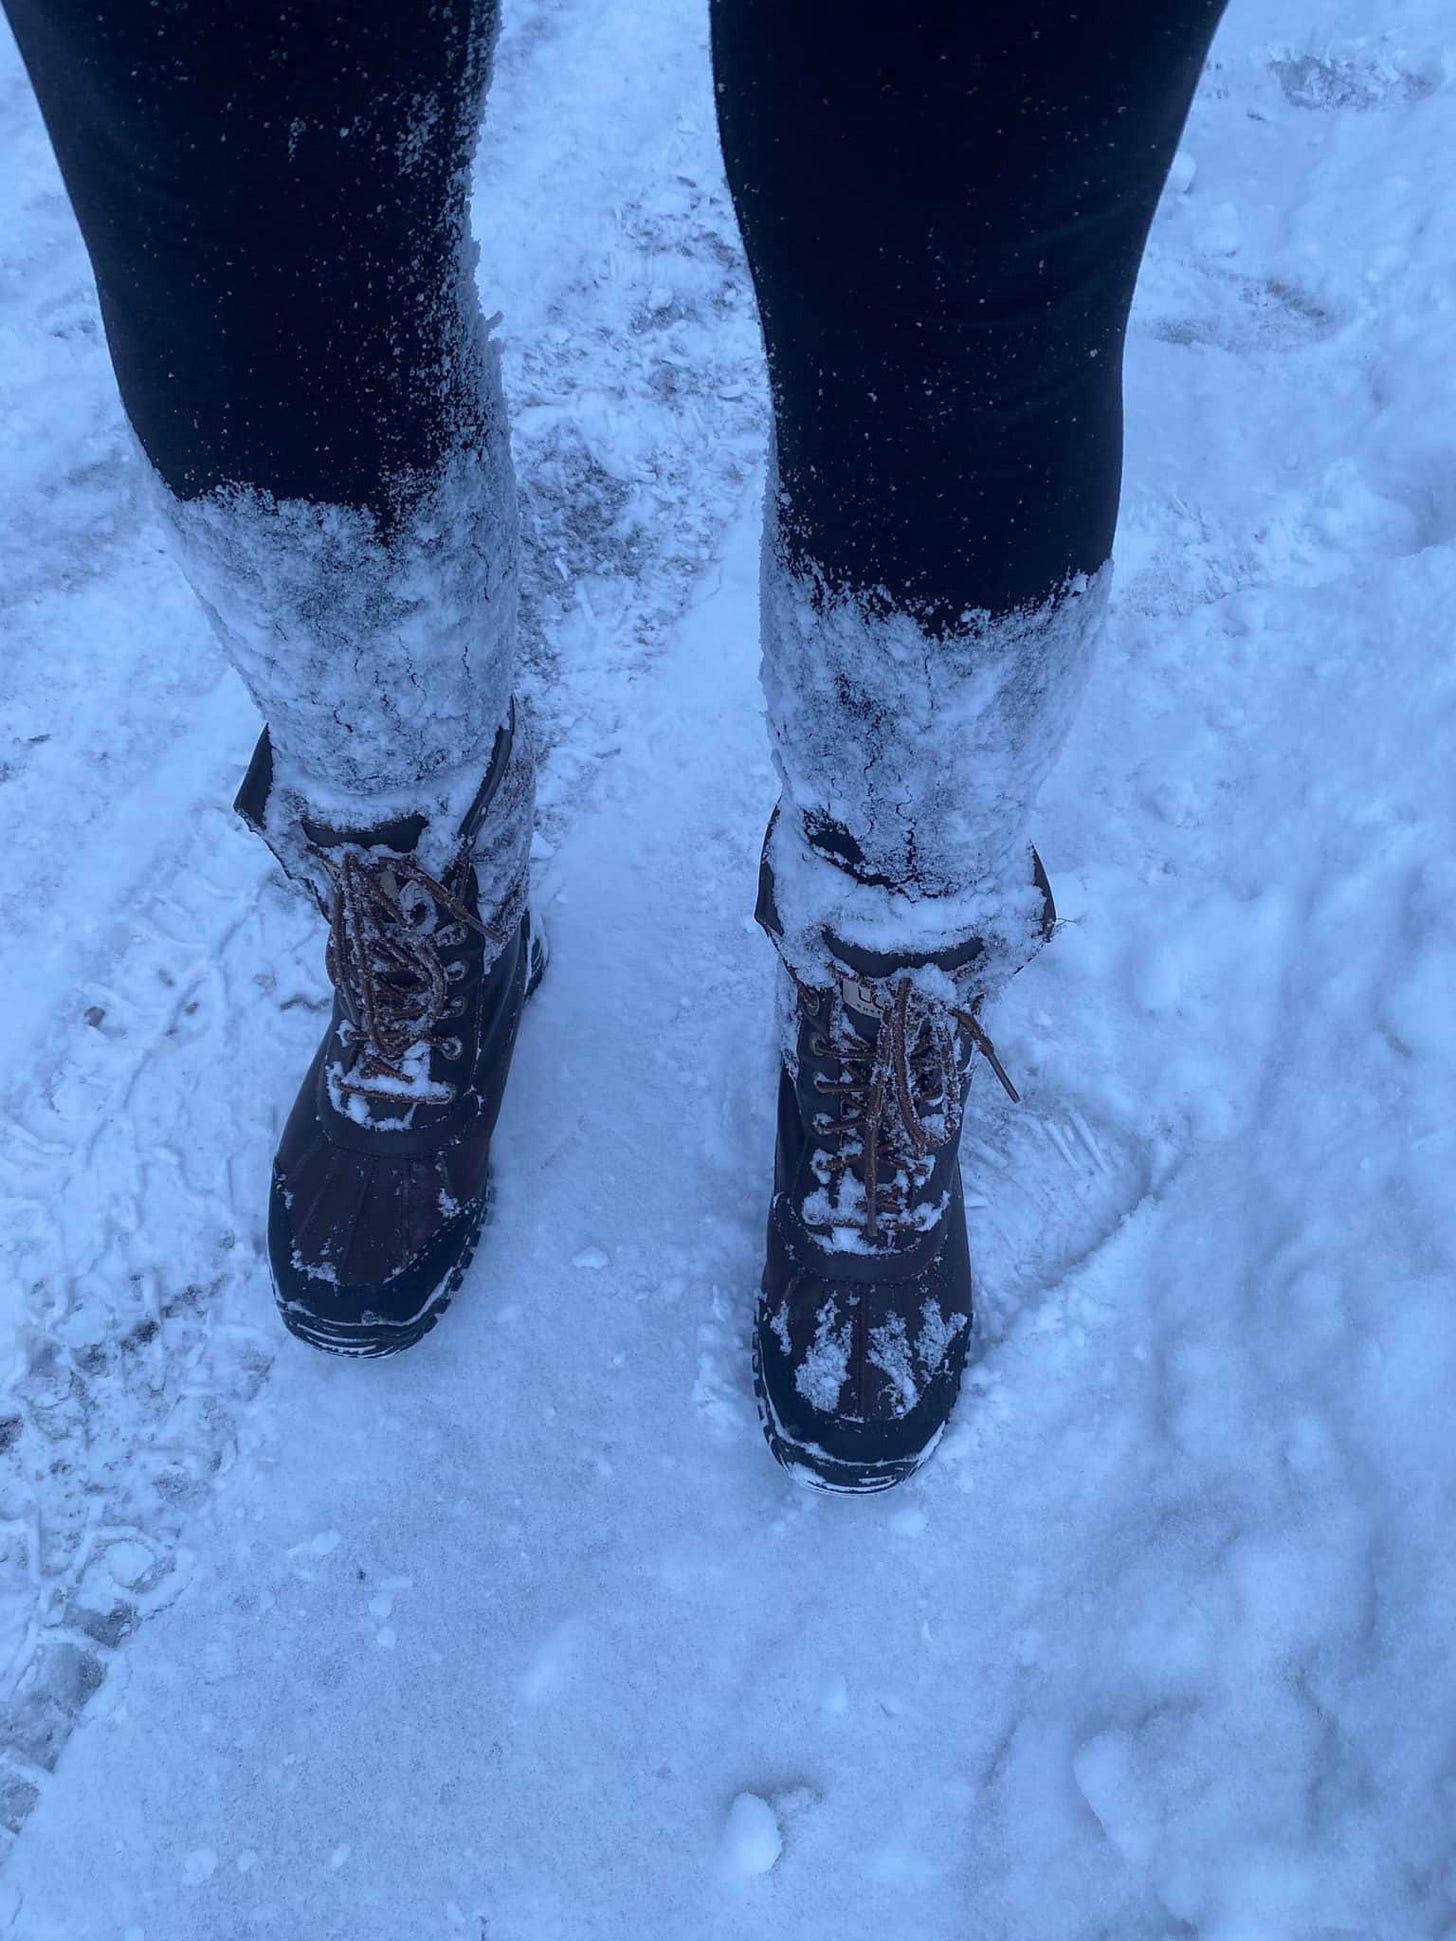 May be an image of footwear and snow